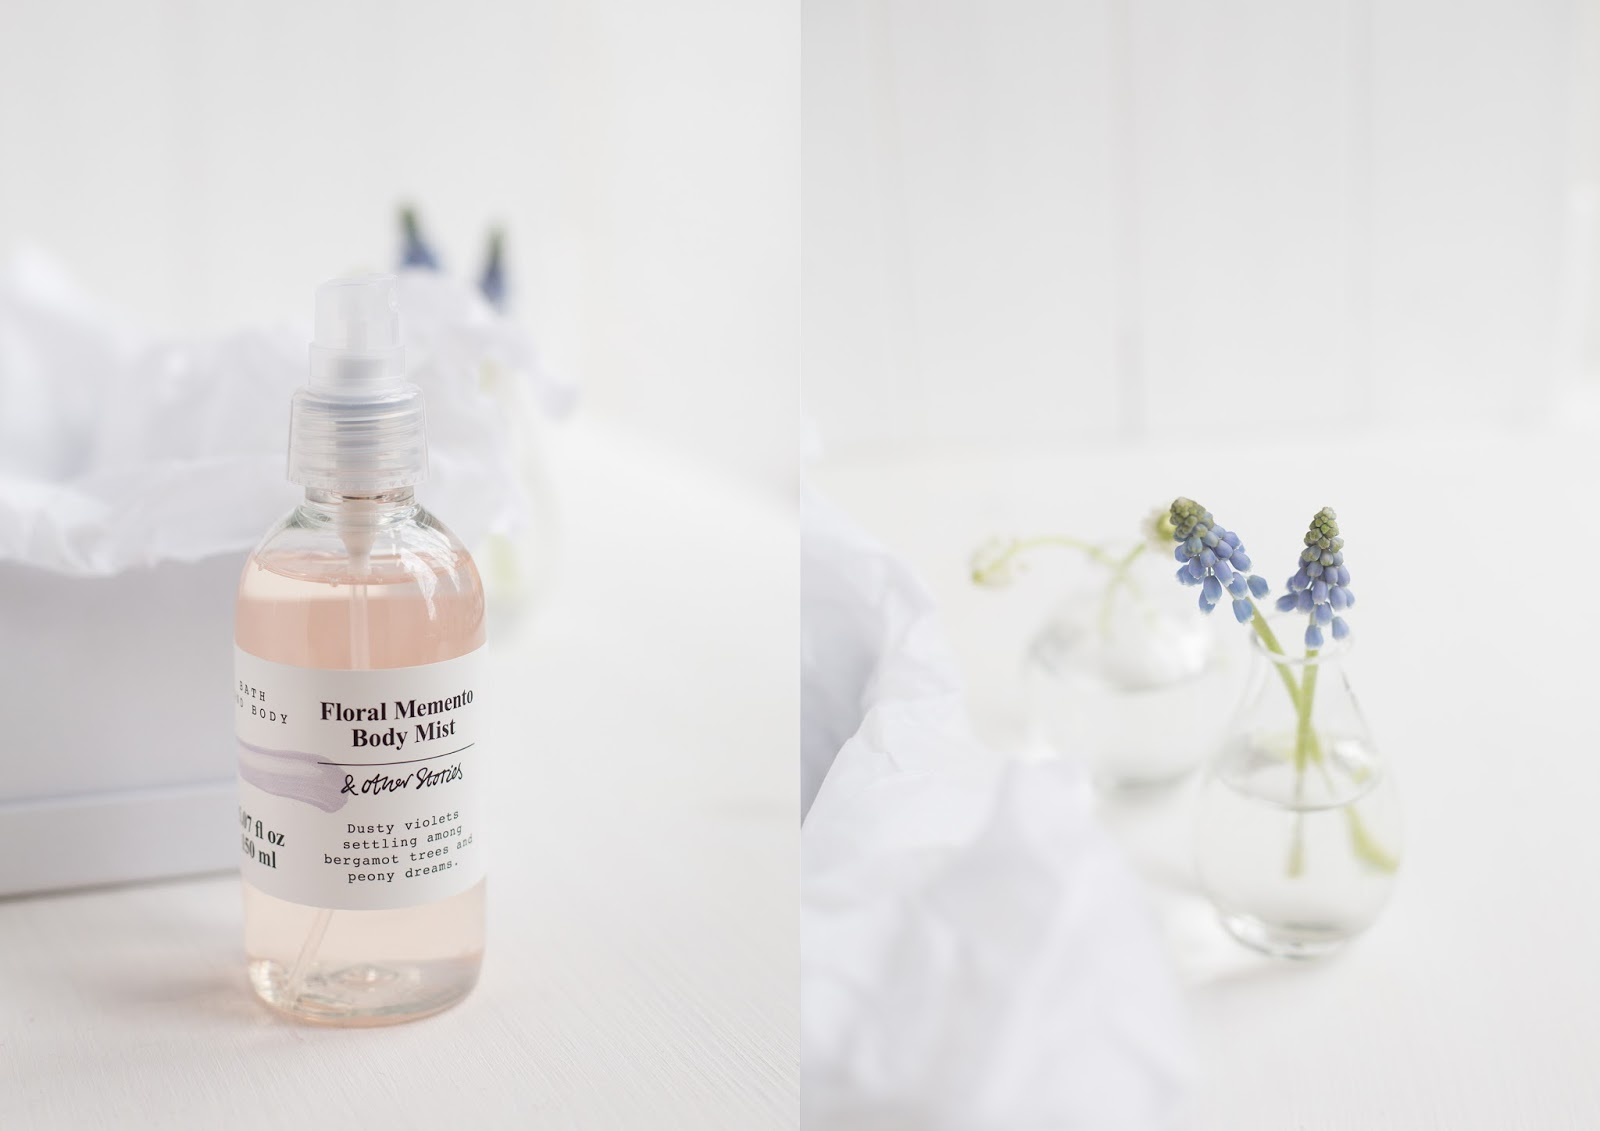 Floral Memento Body Mist von &otherstories